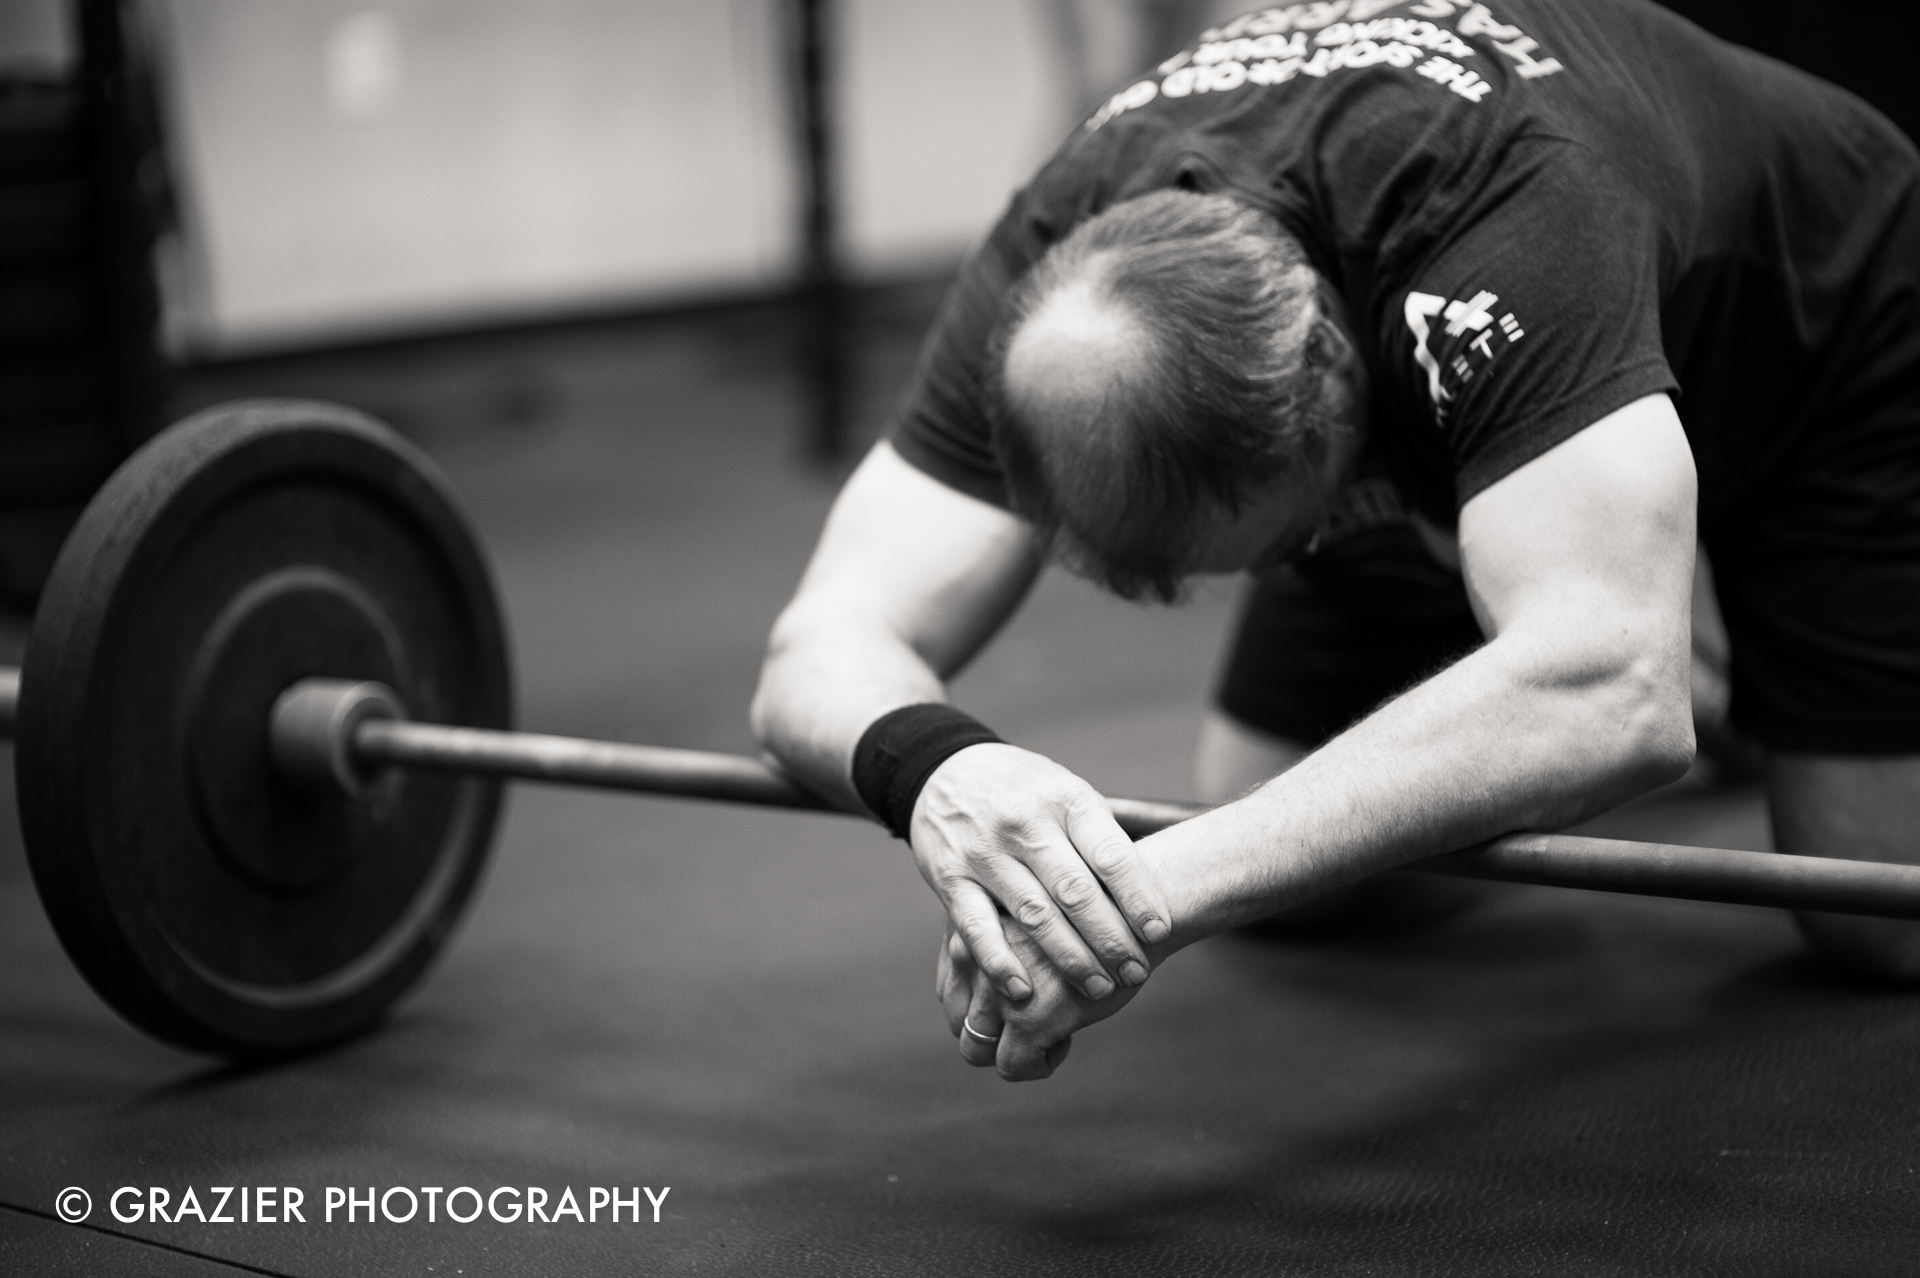 Grazier_Photography_Crossfit_150328-83.JPG